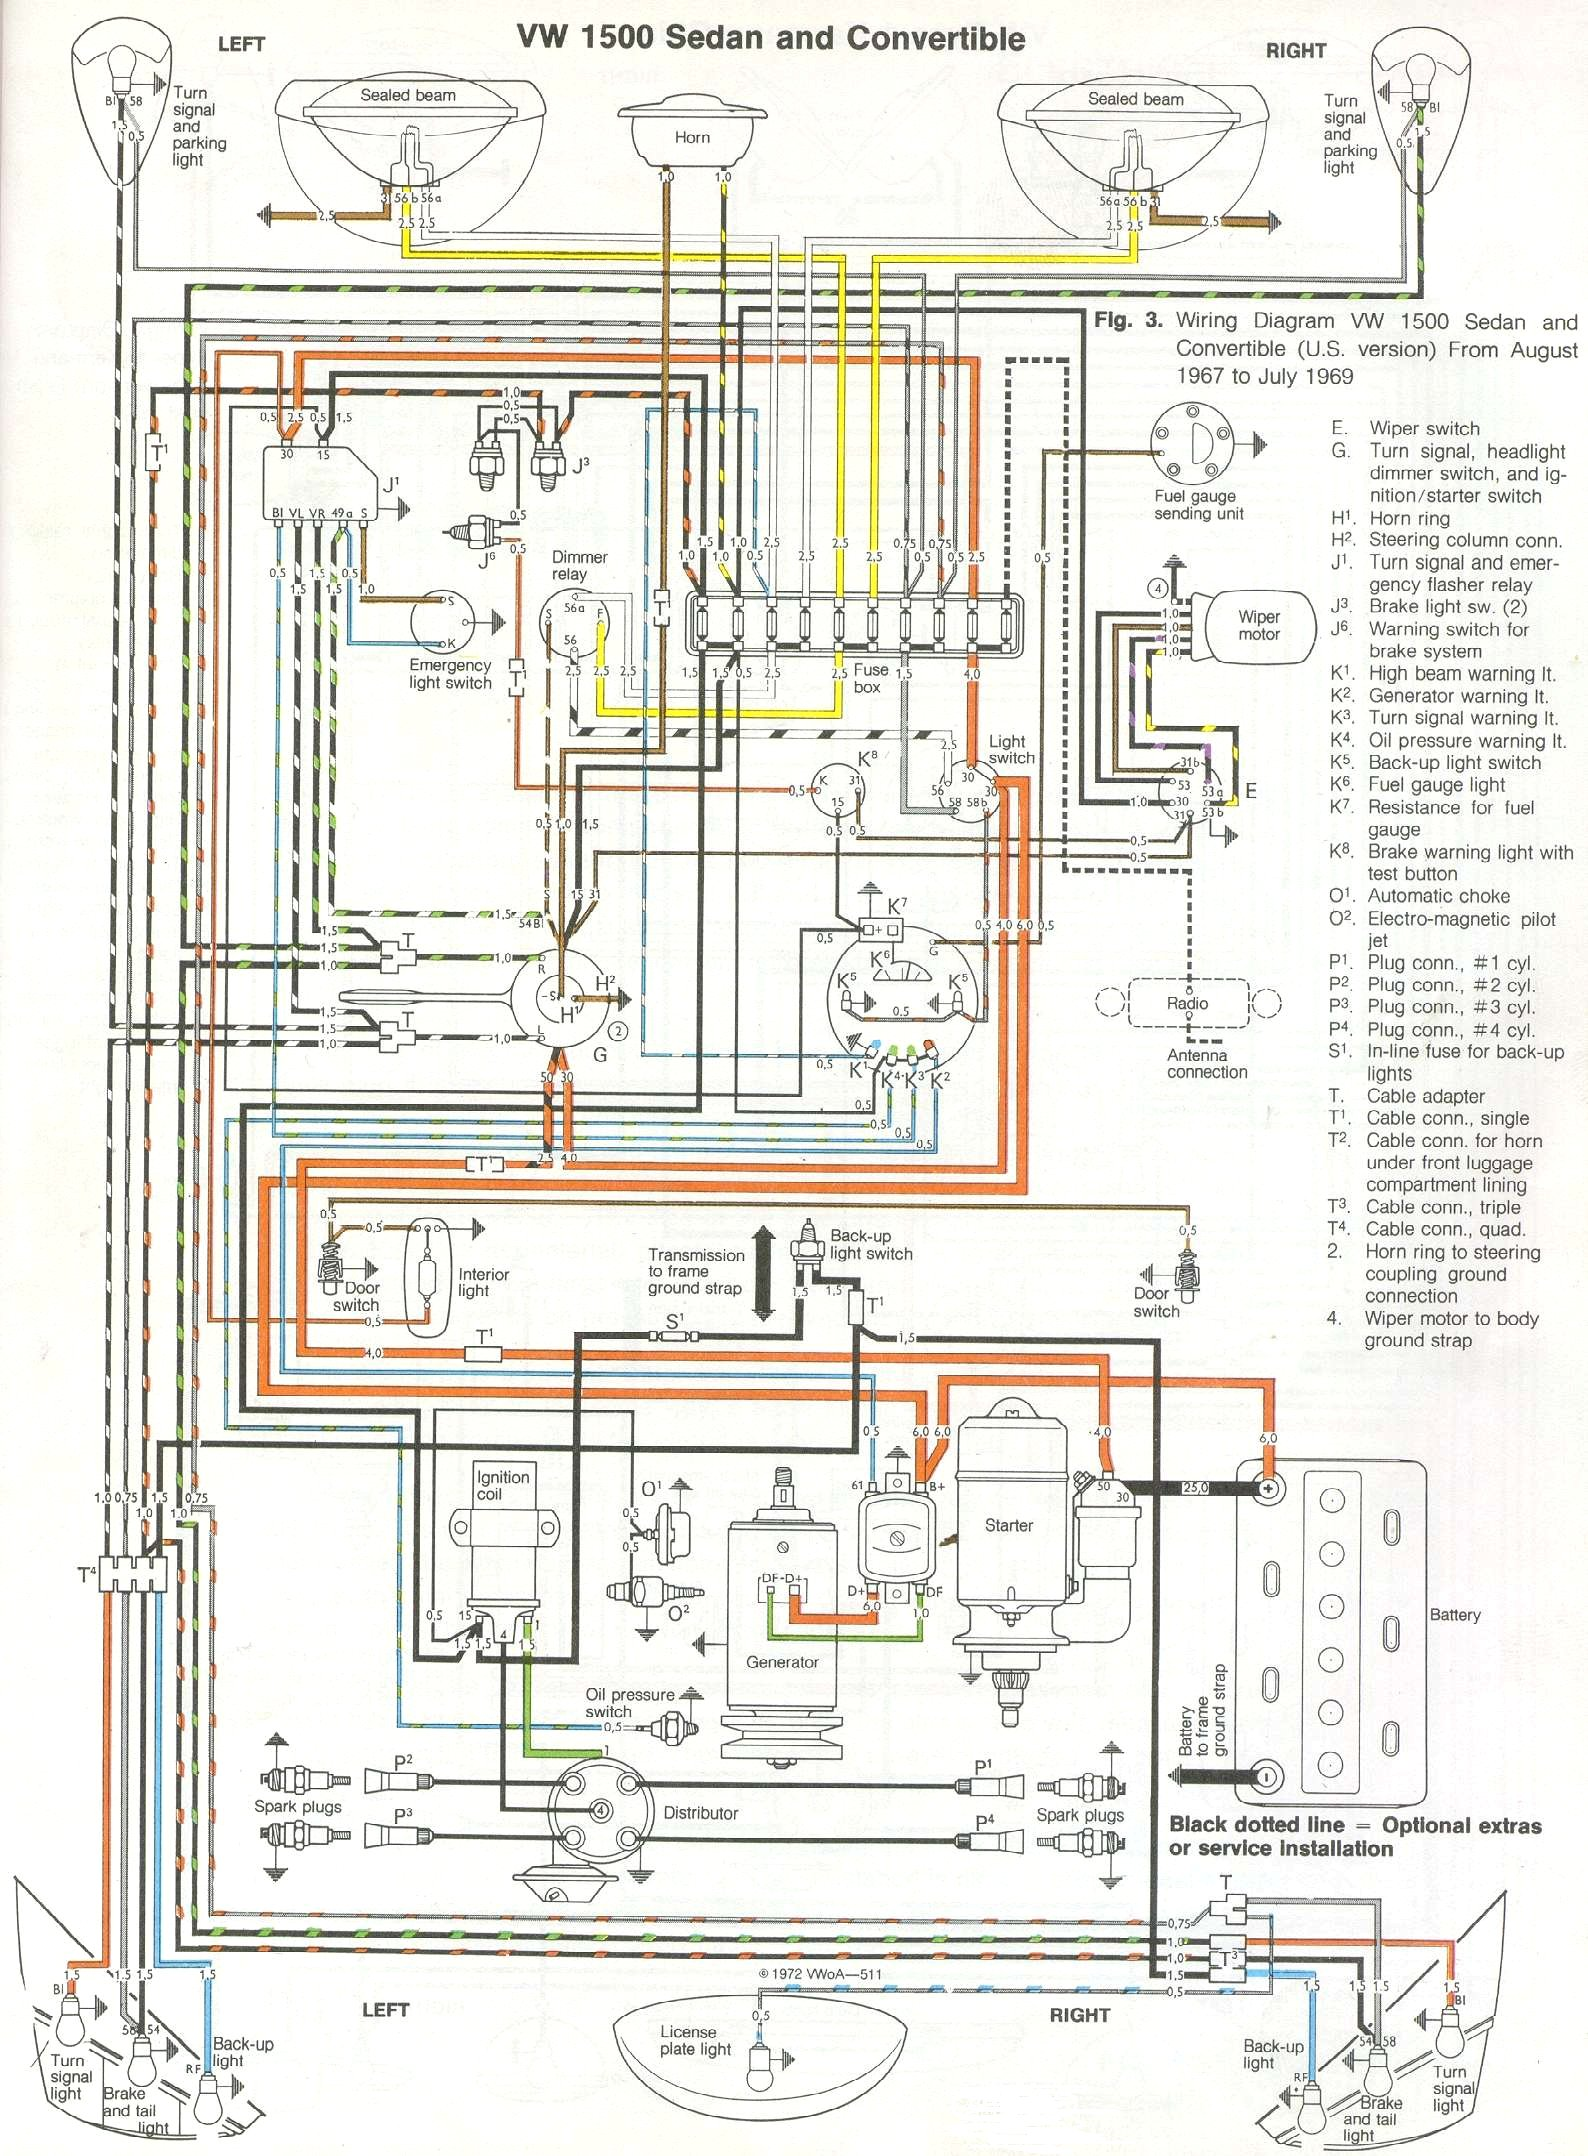 2003 Cobra Fuse Box Wiring Diagram Will Be A Thing 2006 Pt Cruiser Layout 1969 71 Beetle Thegoldenbug Com Mustang Chrysler 300